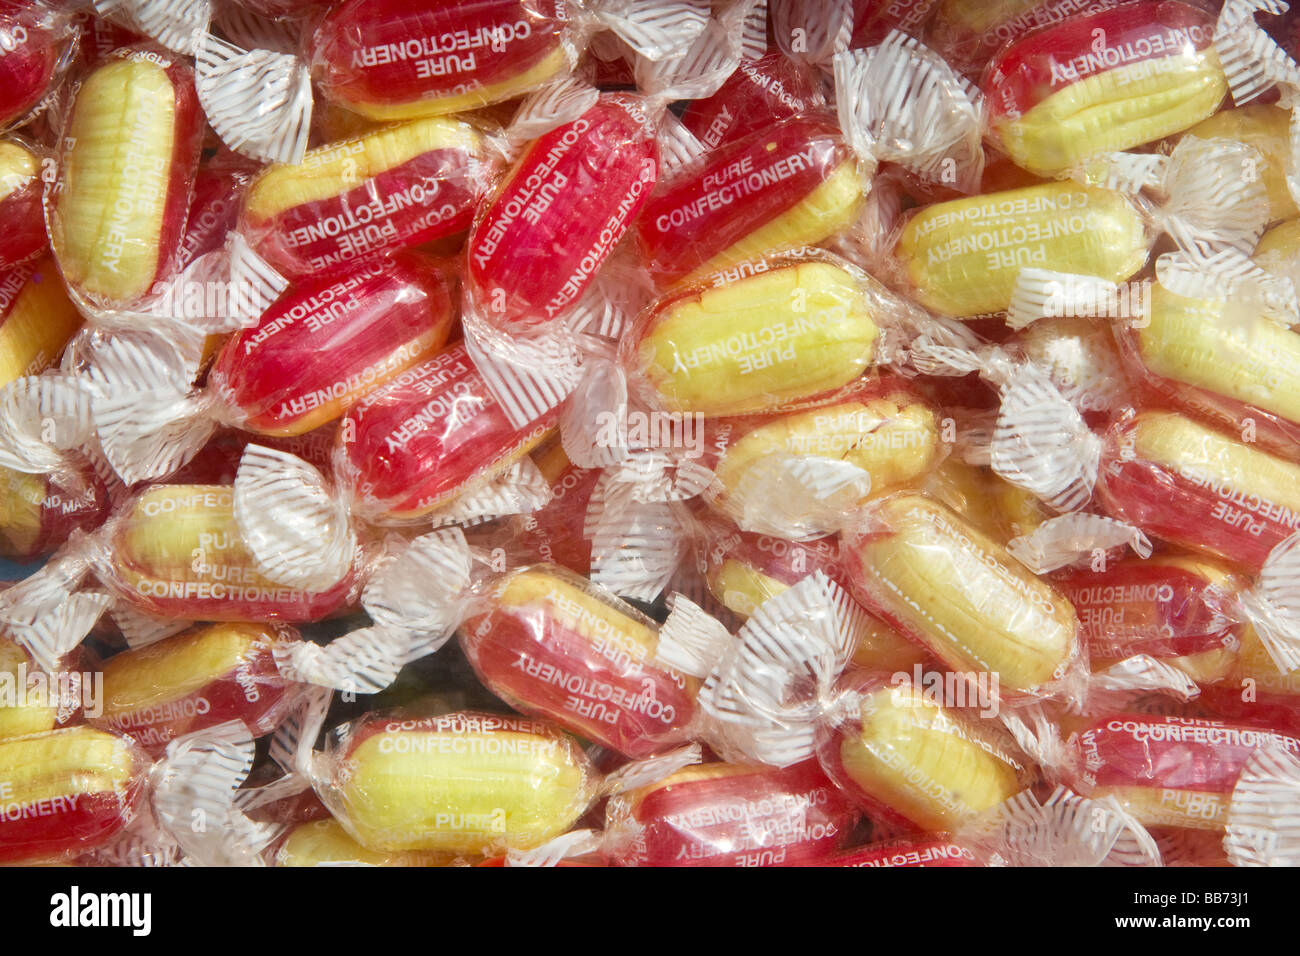 Close up shot of hard boiled sweets in wrappers - Stock Image